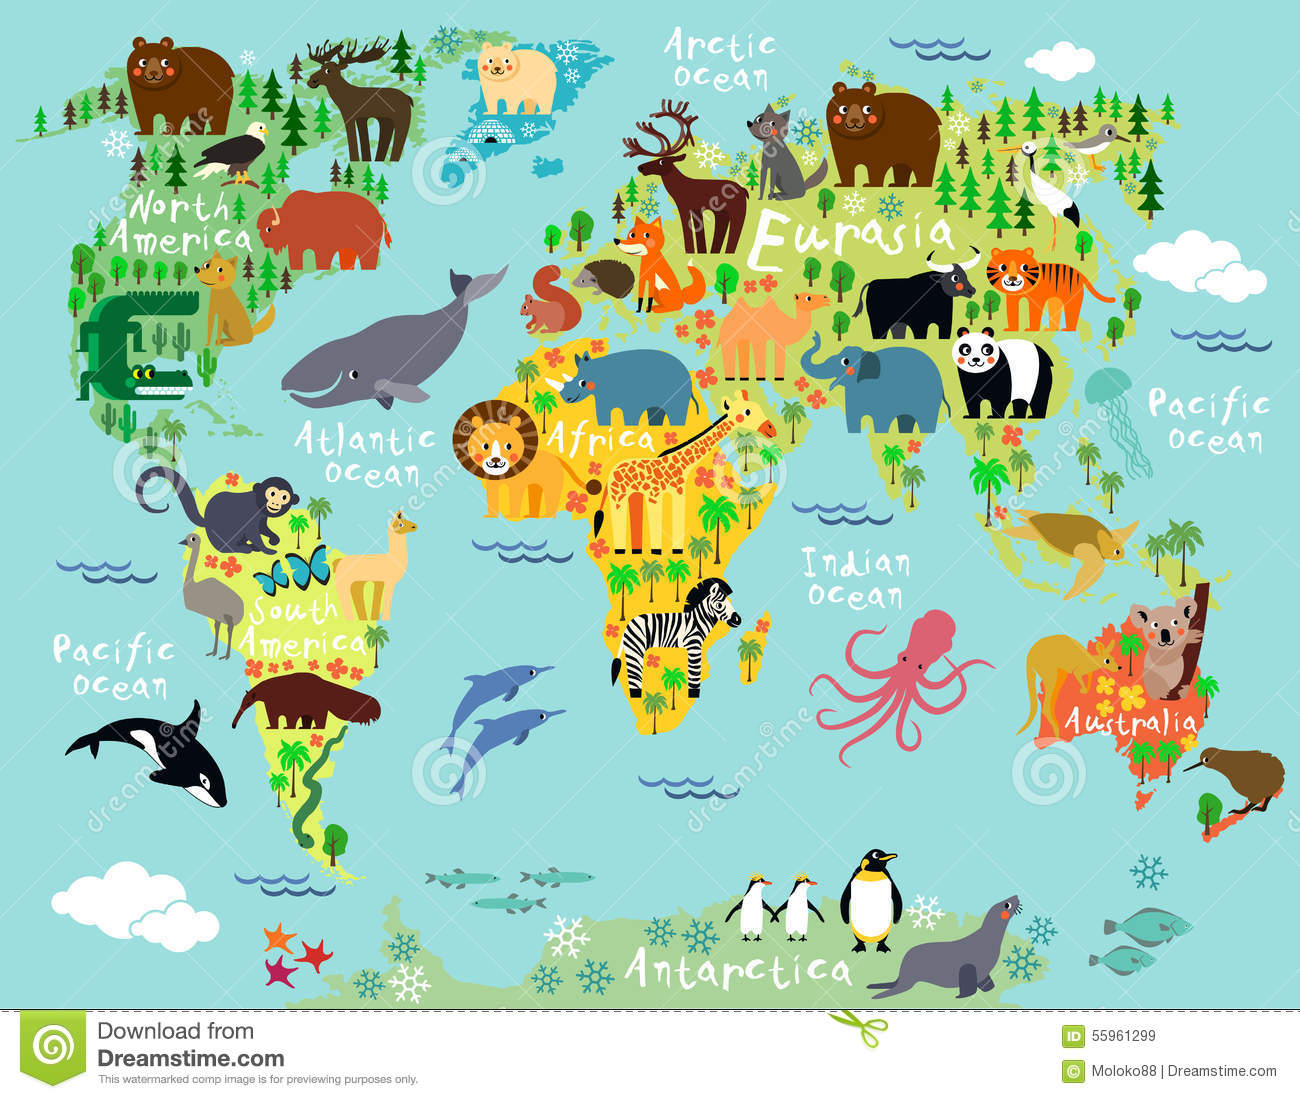 World map stock vector. Illustration of australia, madagascar